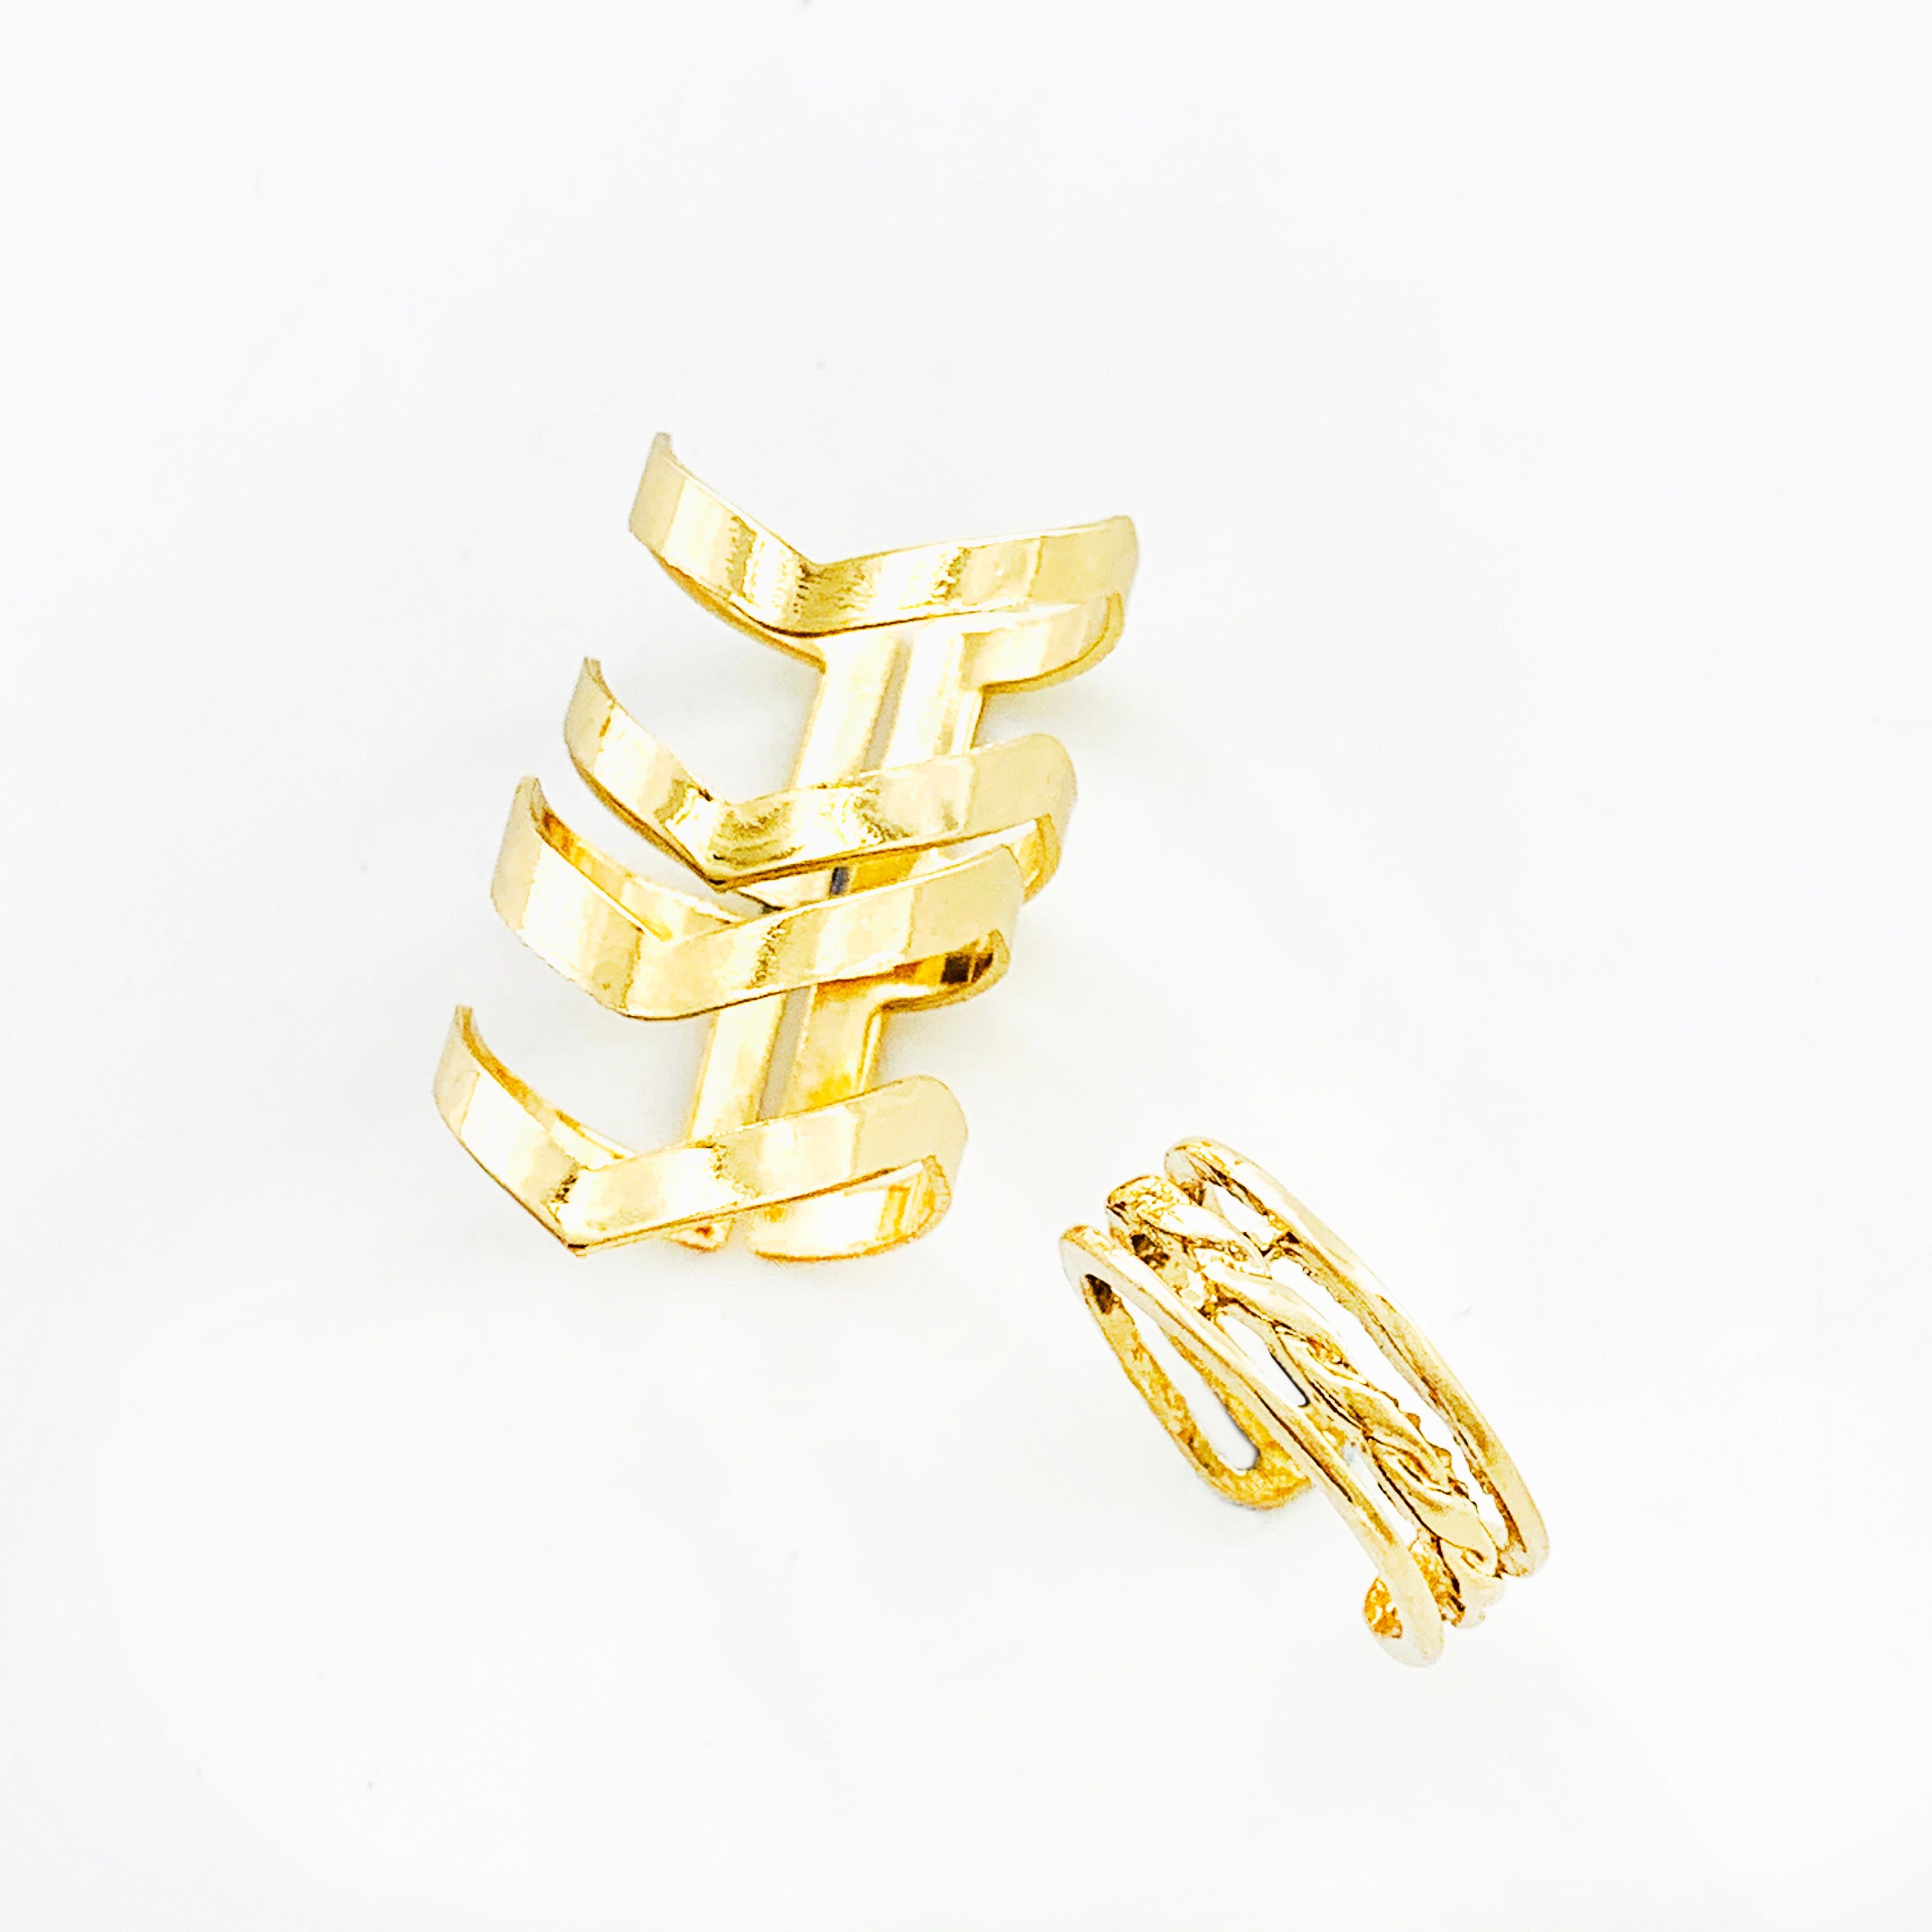 Triple gold rings